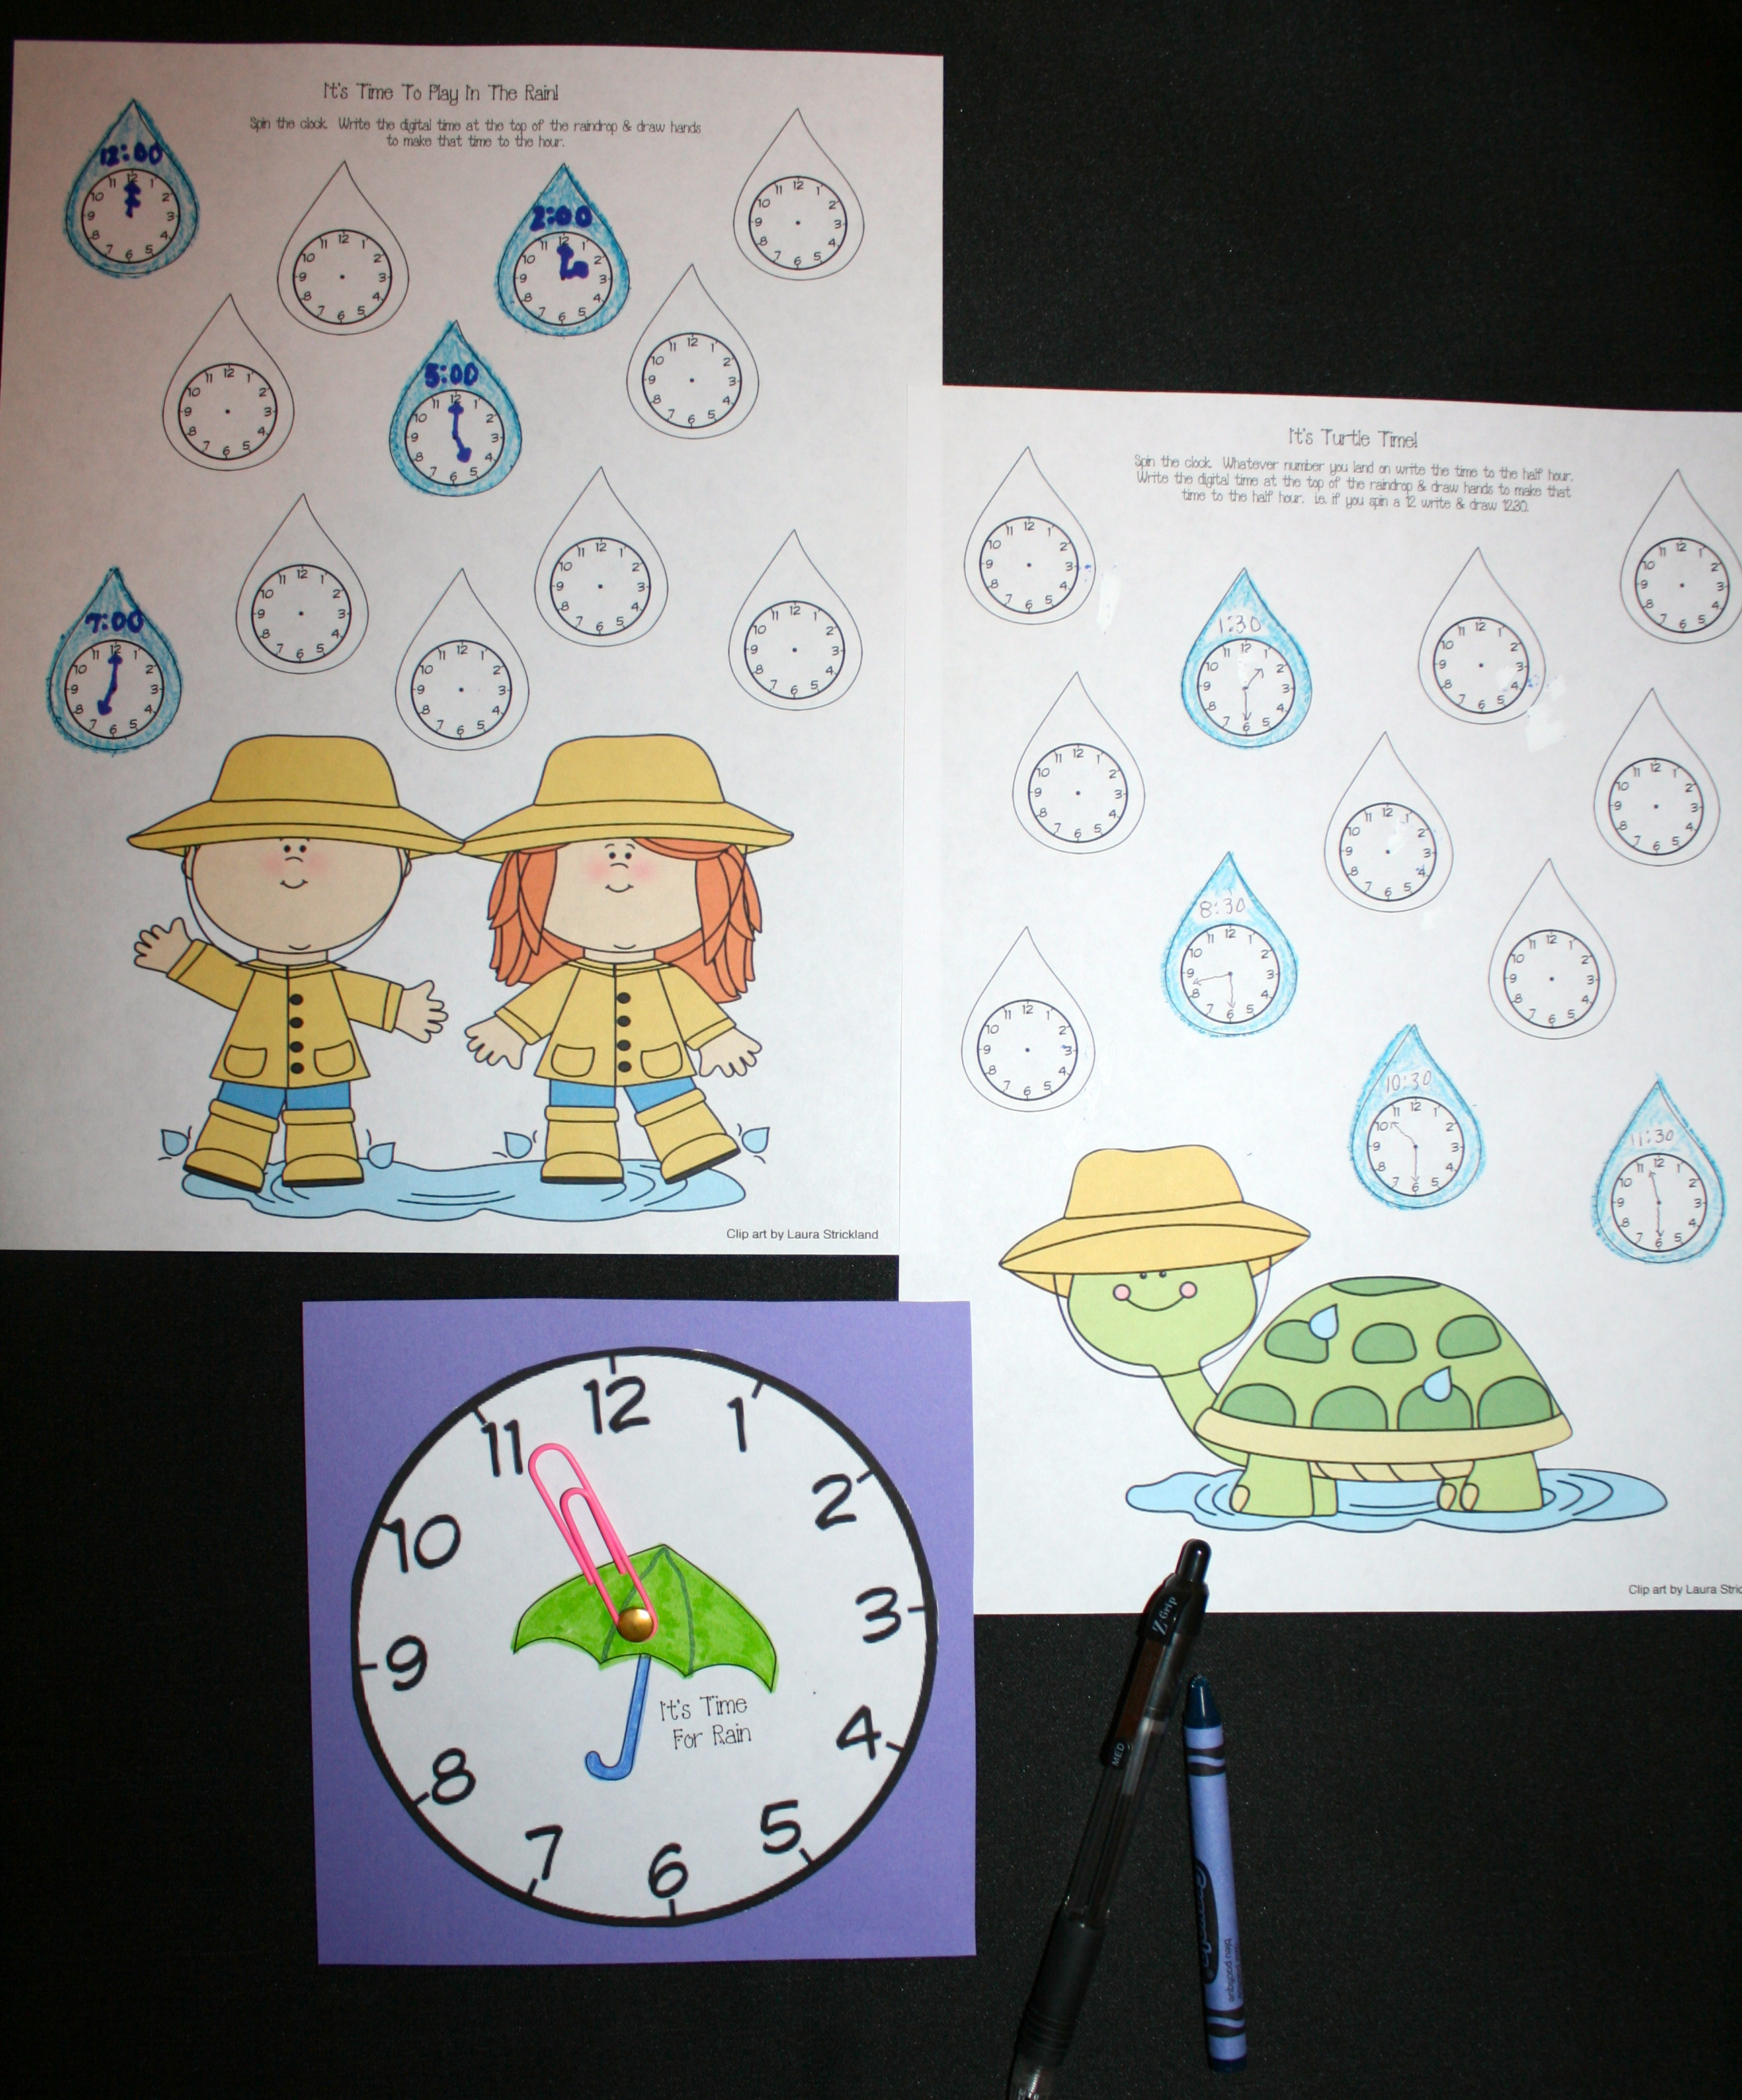 telling time activities, telling time lessons, telling time games, telling time centers, clock templates, clock spinners, clock games, 1.MD.3, free common core for kindergarten, free common core for 1st grade, CCSS time, rain activities, weather activities, weather lessons, weather games, rain games,